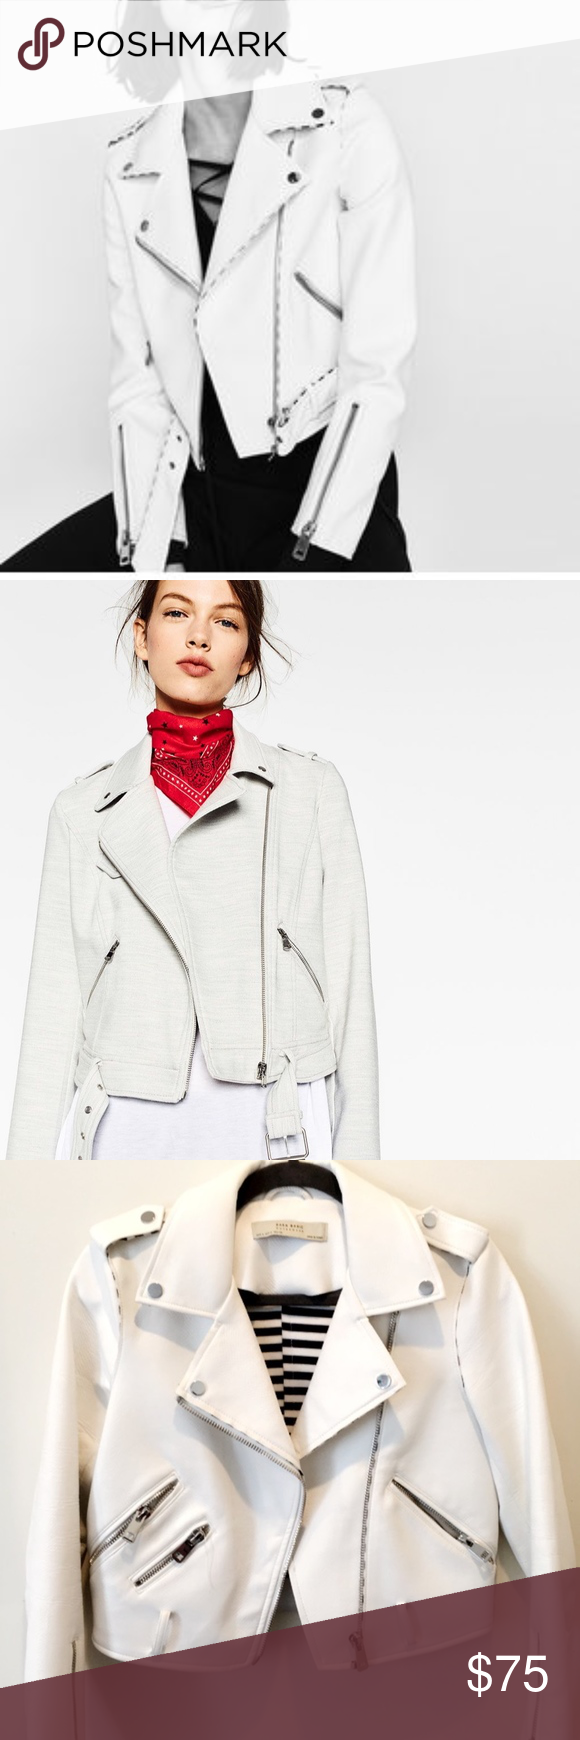 ZARA BASIC OUTERWEAR White Faux Leather Jacket in perfect